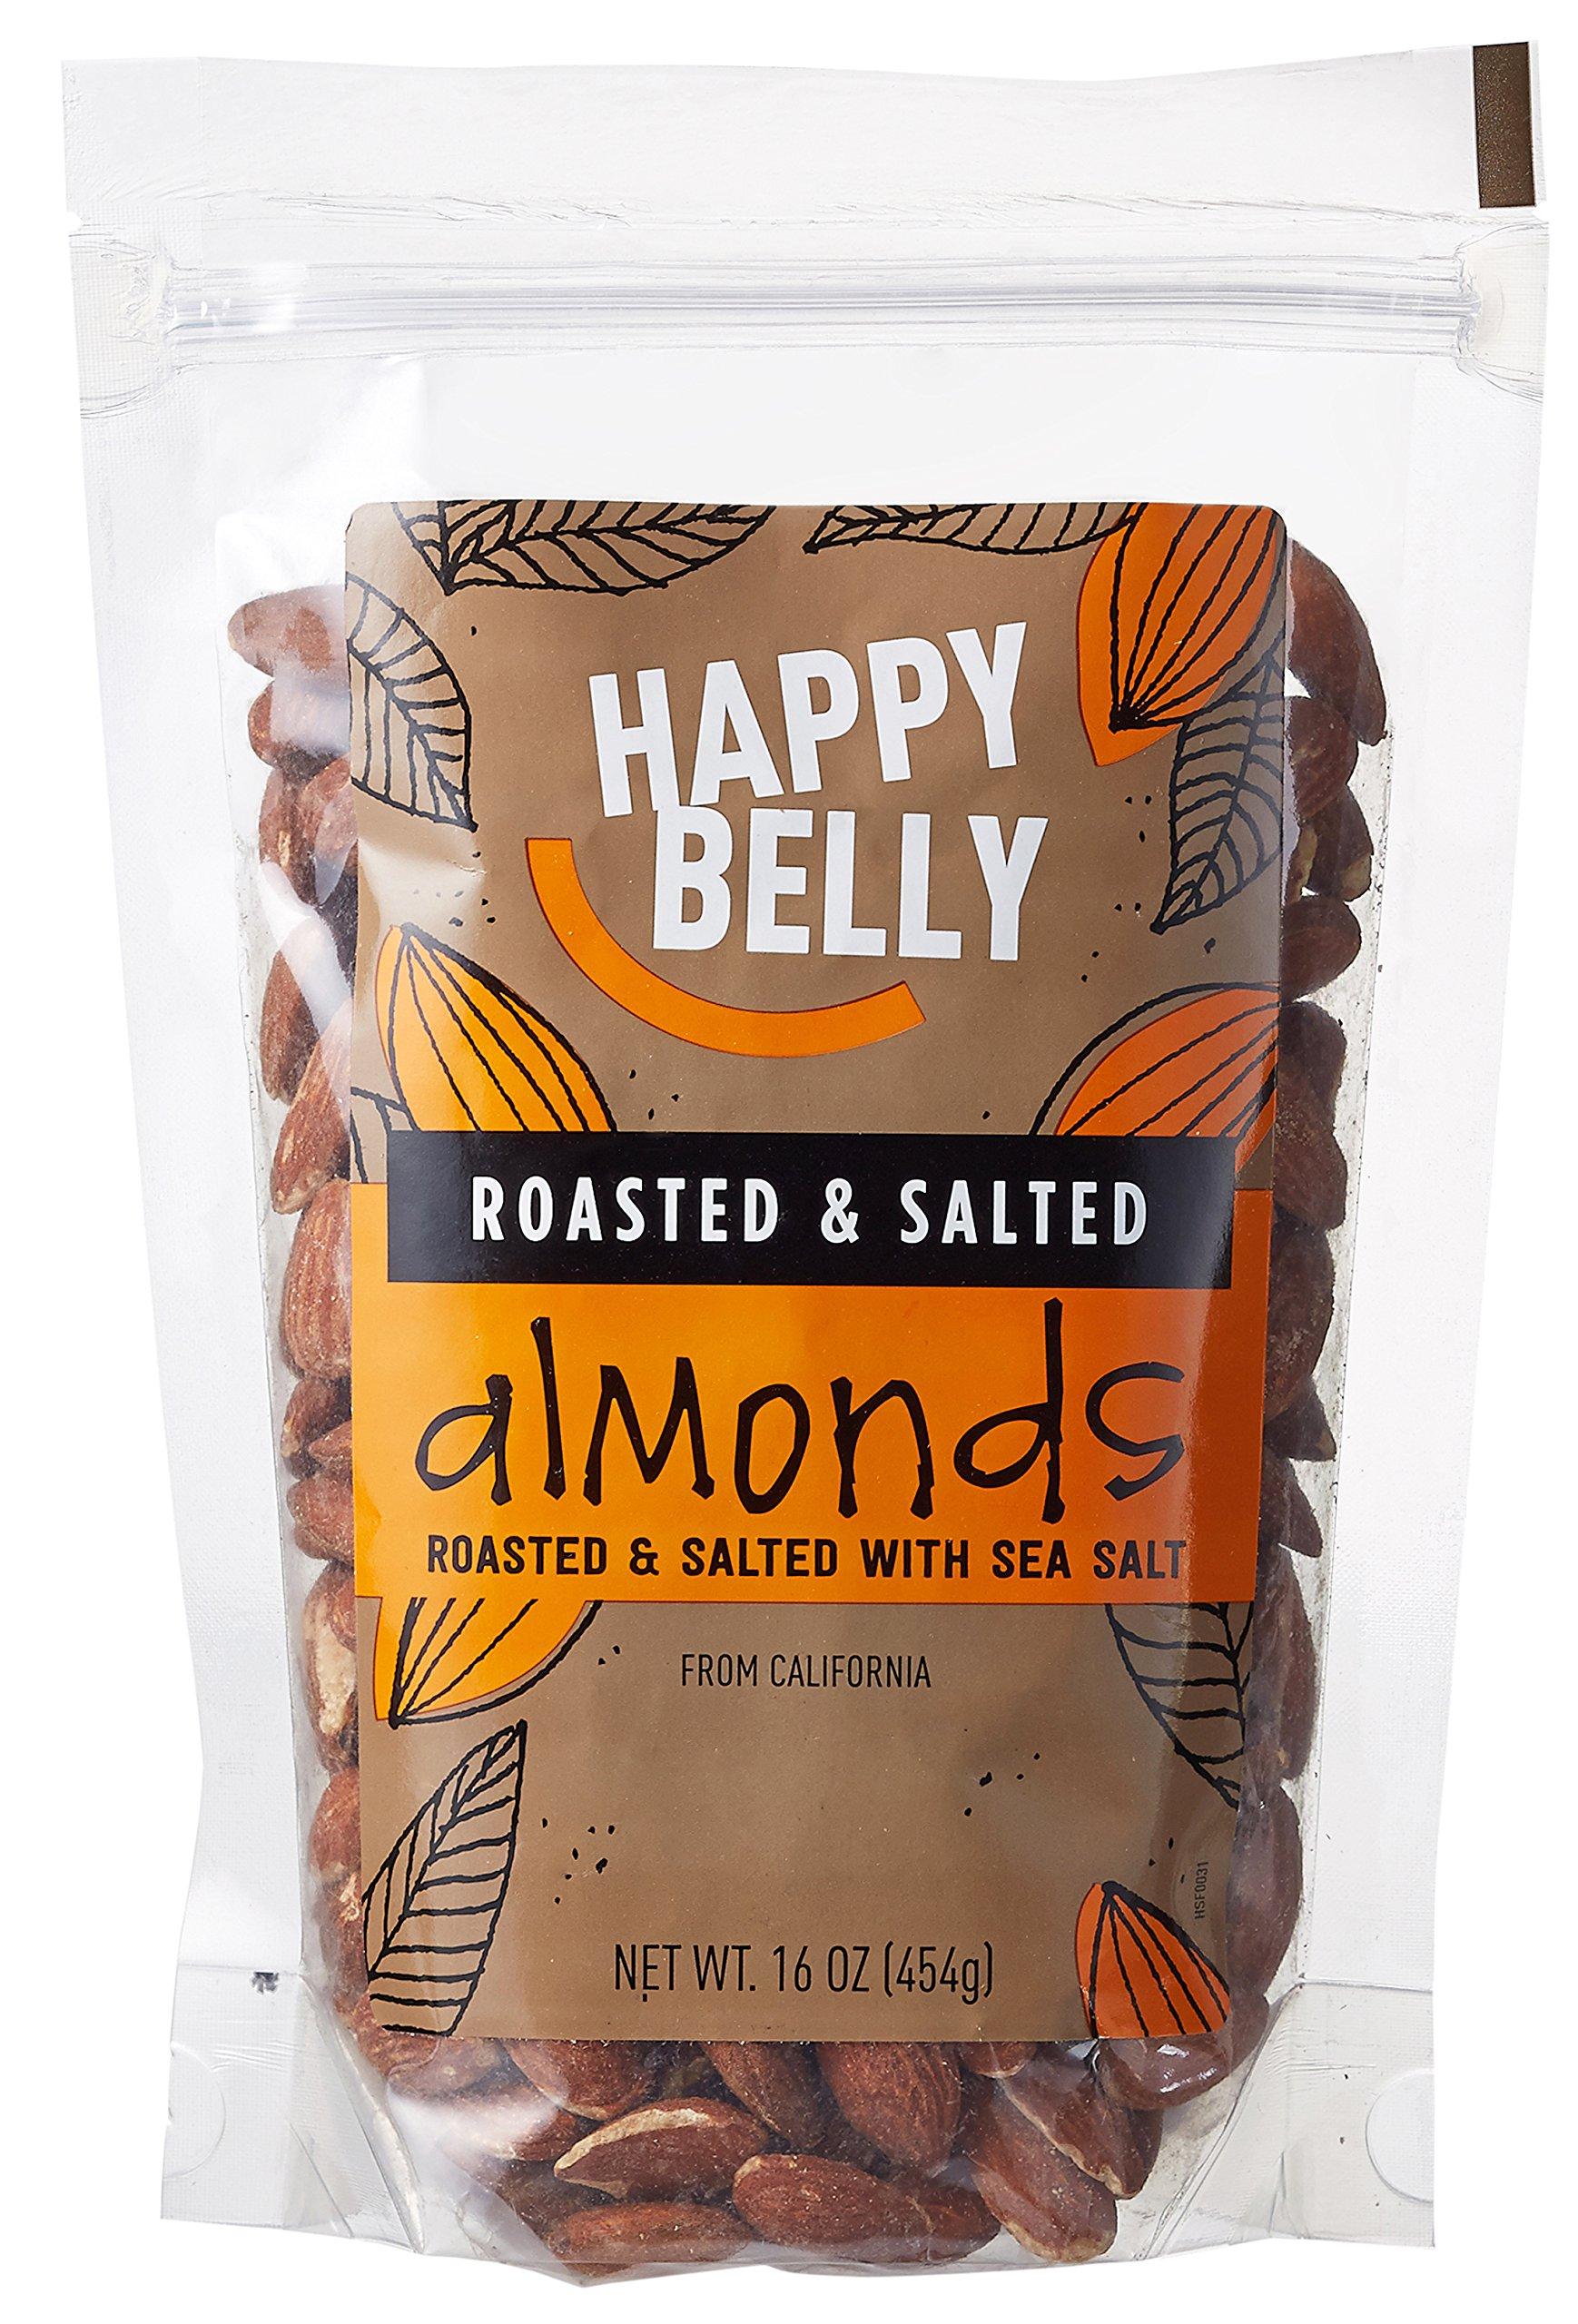 Buy Wonderful Almonds Roasted & Salted Almonds, 10 oz in ...